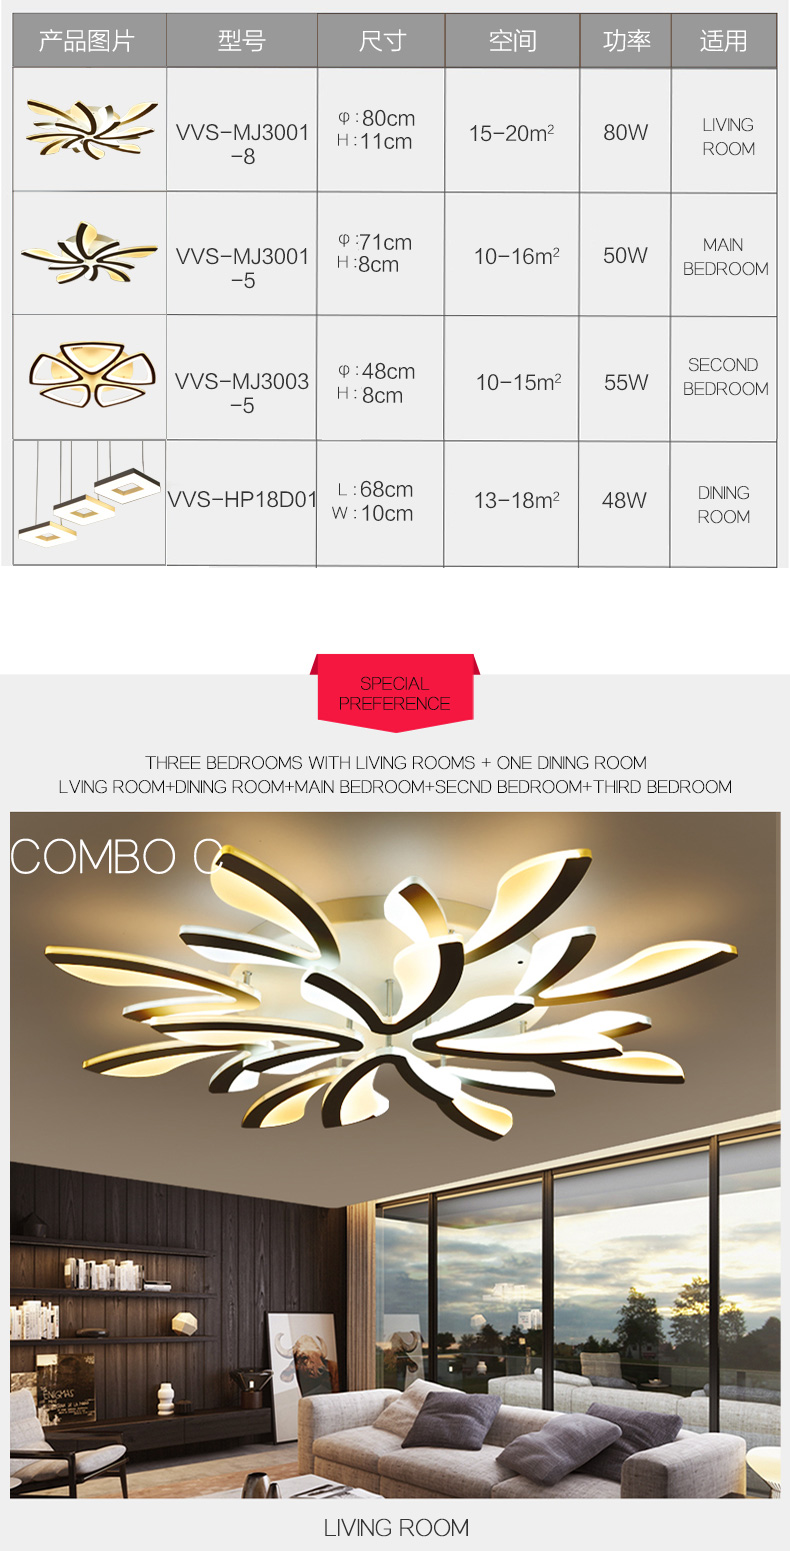 H0ea987889cf5498caedcfc628a7f04dbO LED Ceiling Lights Dandelion Indoor Ceiling Lamp Modern Simple Post-Modern Living Room Bedroom Dining Room Study Room